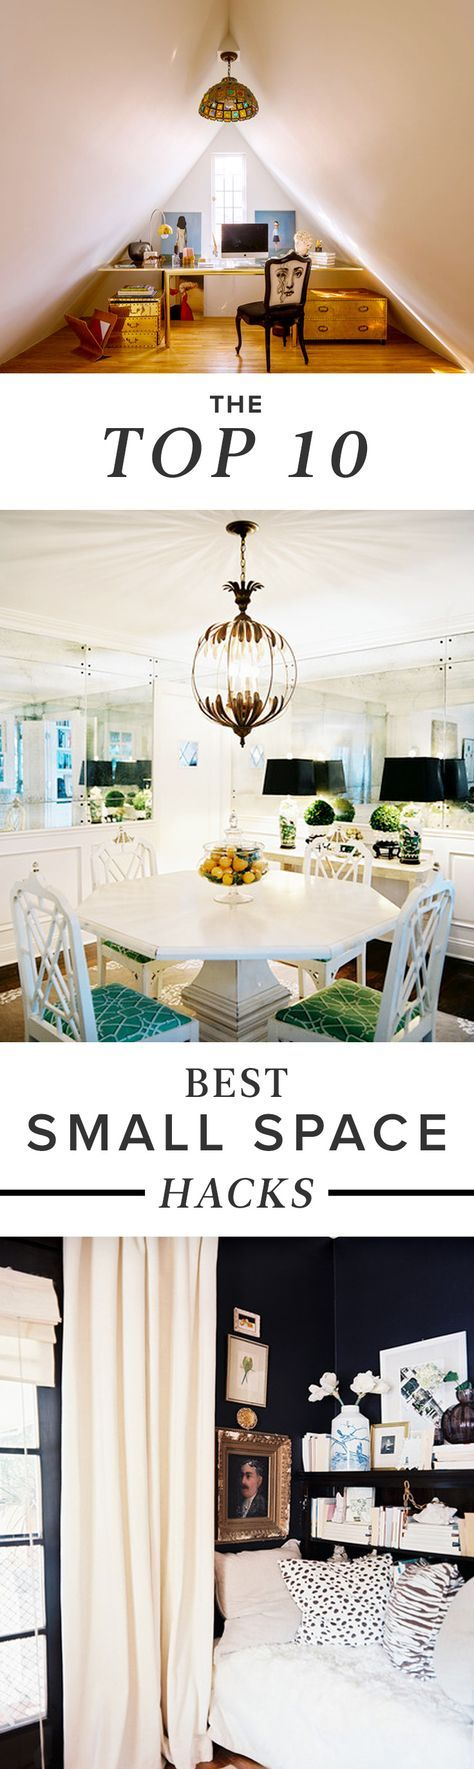 Best Small Space Hacks: Whether you live in a five-bedroom spread in the 'burbs, or a tiny fifth-floor walk-up in the city, no one could argue with a few pointers on how to best utilize the space in which we live. Here, we've rounded up some of our foolproof tips, tricks, and strategies for small-space living that are easier than you think. Click through to see what we've got up our sleeve.